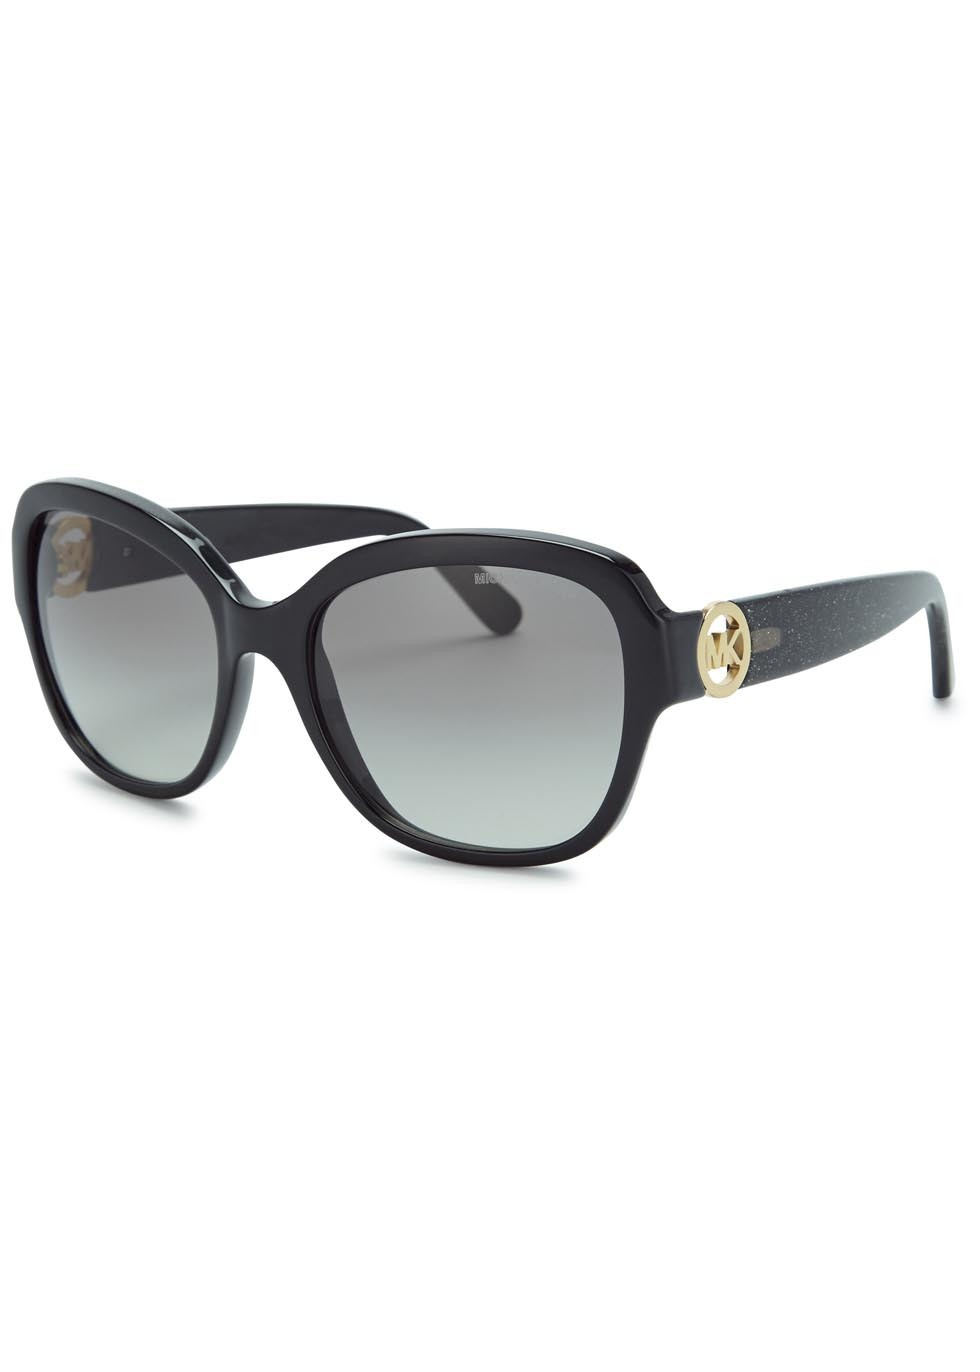 Black Oval Frame Sunglasses - secondary colour: gold; predominant colour: black; occasions: casual, holiday; style: round; size: large; material: plastic/rubber; pattern: plain; finish: plain; embellishment: charms; season: a/w 2015